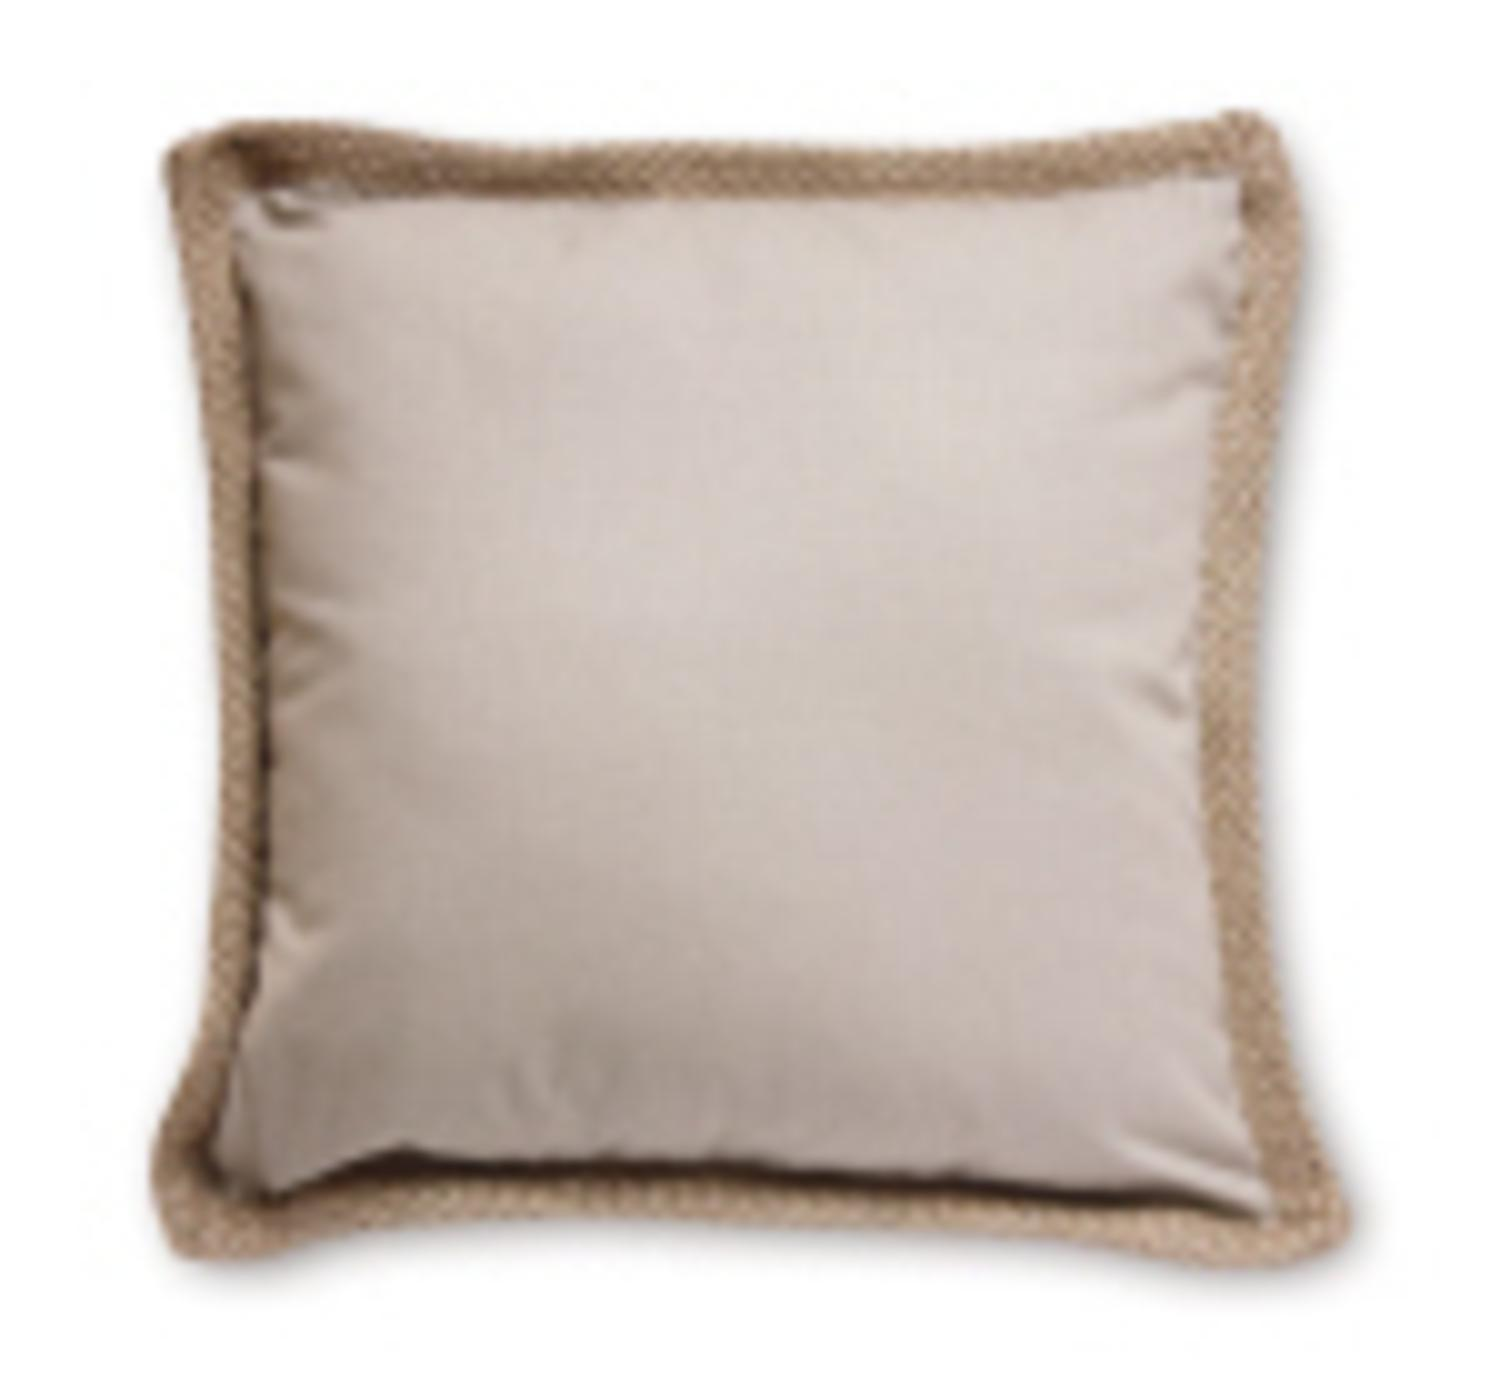 """Seaside Treasures Taupe with Beige Jute Square Decorative Throw Pillow 18"""" - image 1 of 1"""